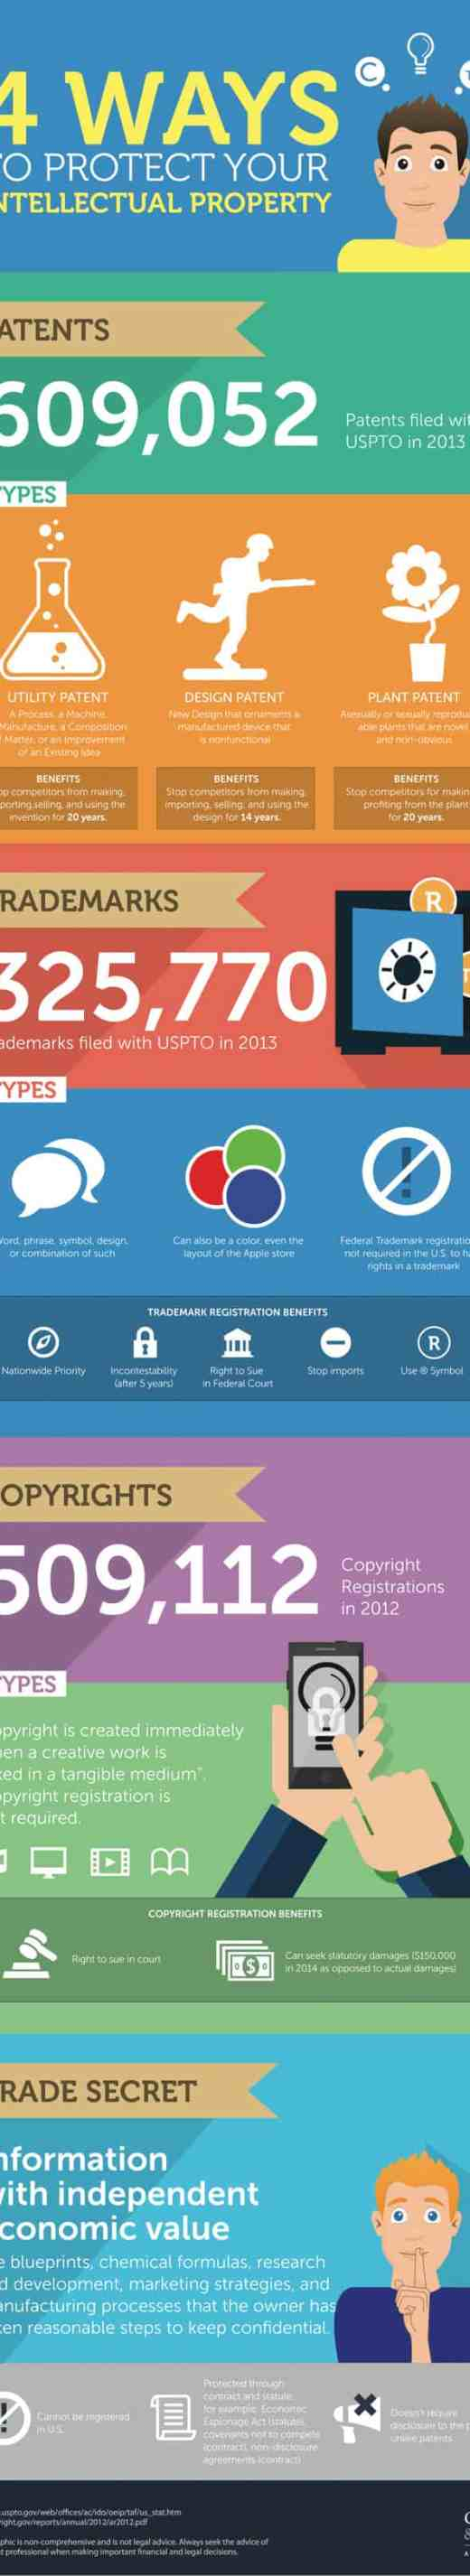 Keeping Intellectual Property Safe Infographic Seafoam Media